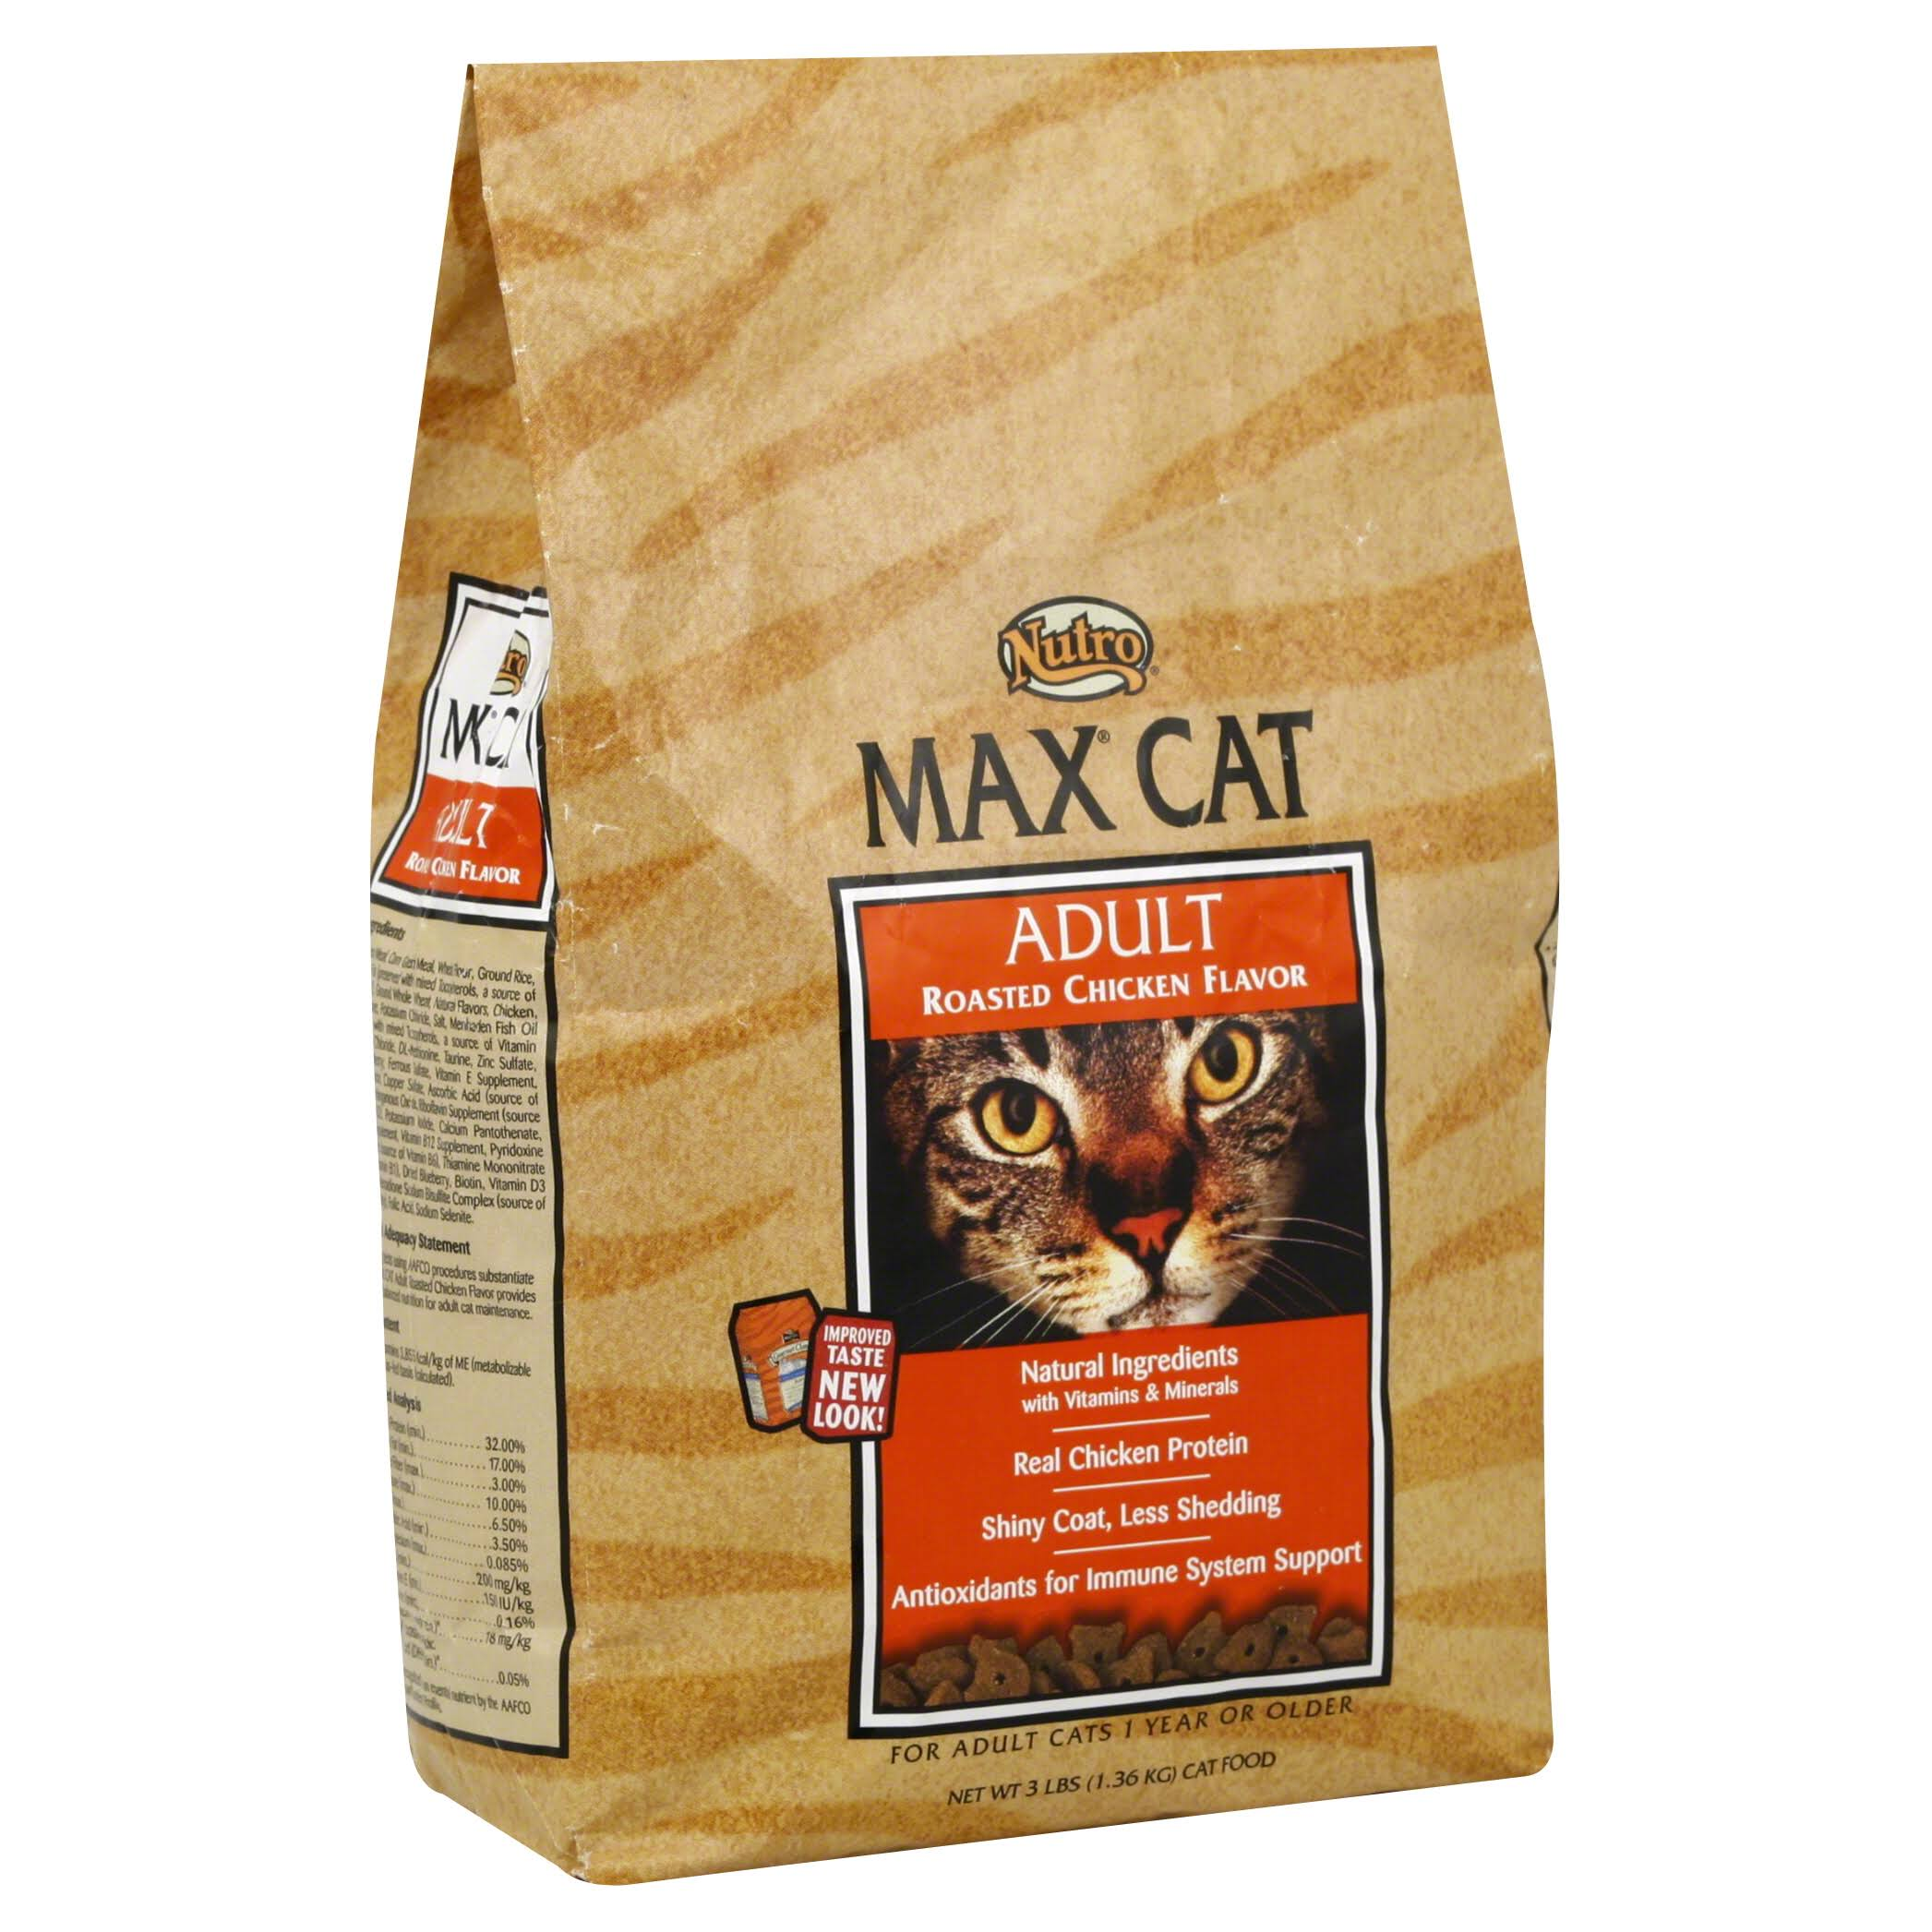 Nutro Max Cat Adult Dry Cat Food - Roasted Chicken, 3lbs